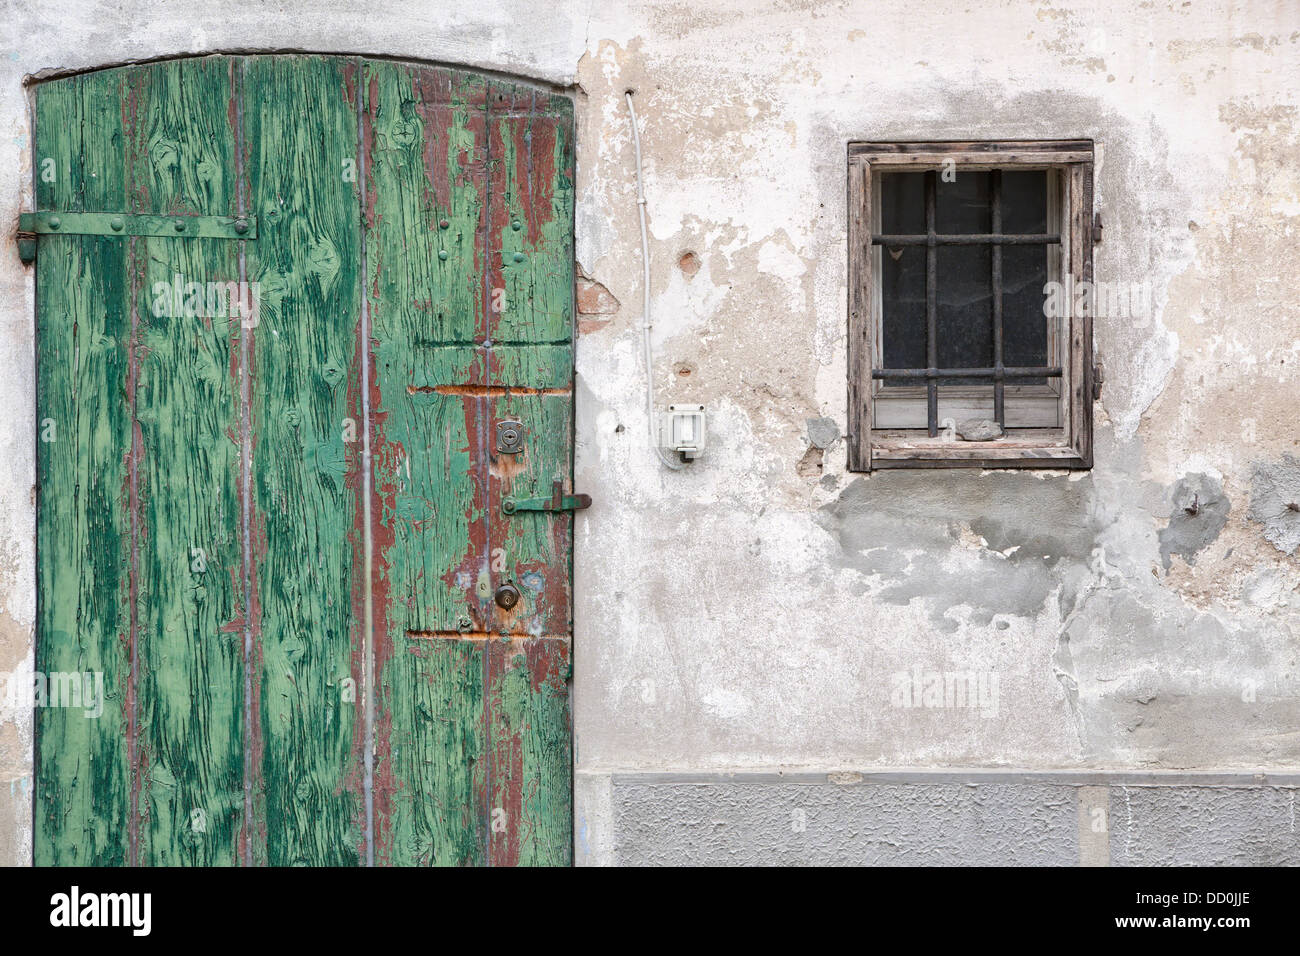 Fresh Detail of old stucco house with crumbling facade, green wooden  GQ39